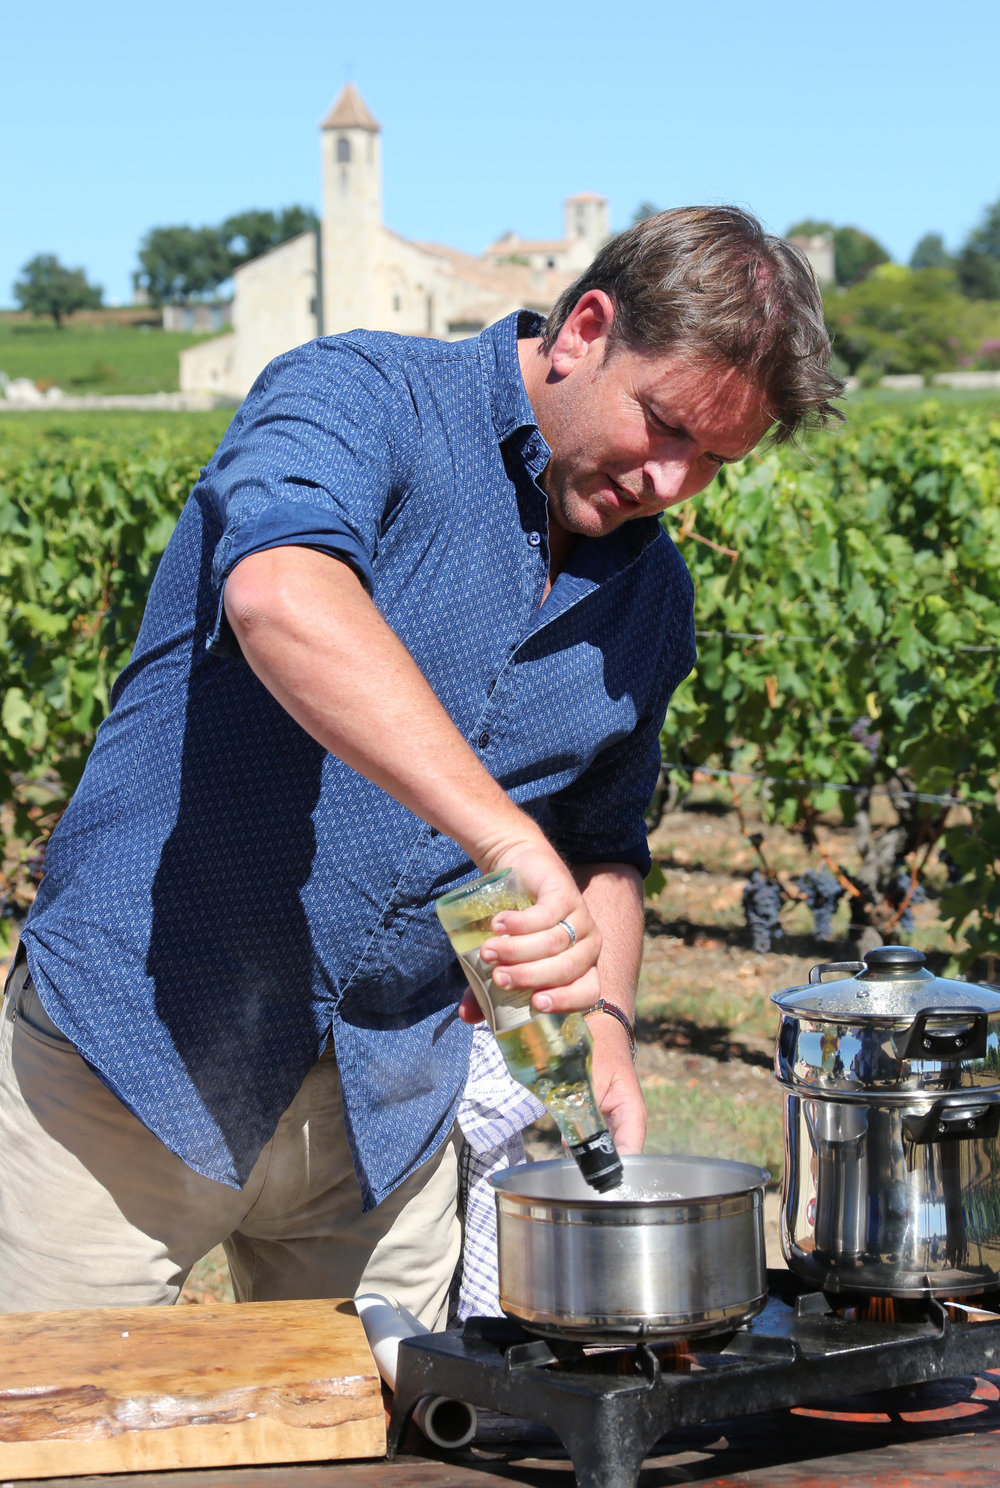 Cooking in the vineyards of Château Cheval Blanc in Saint-Émilion